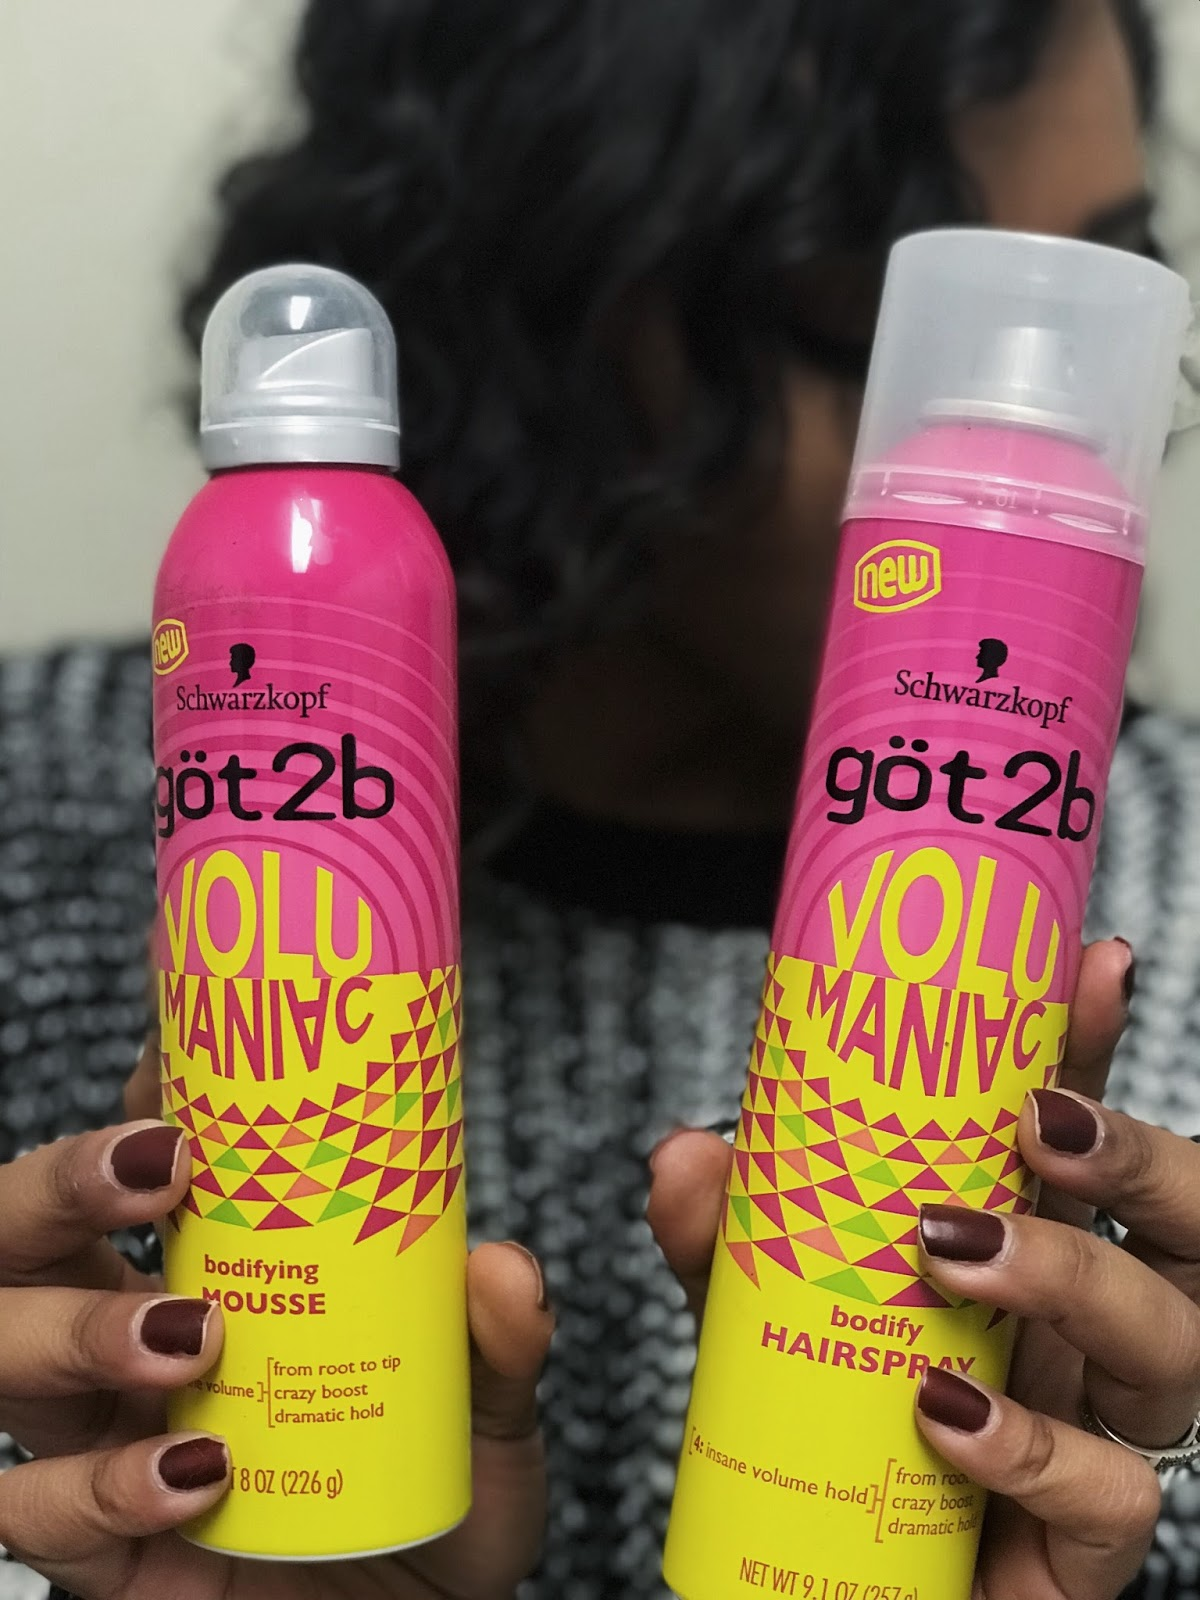 Got2b hair products, how to get curls, how to curl hair with a bob, bob haircut, schwarzkopf, hair products for volume, volumaniac, hair tutorials, how to use a curling wand